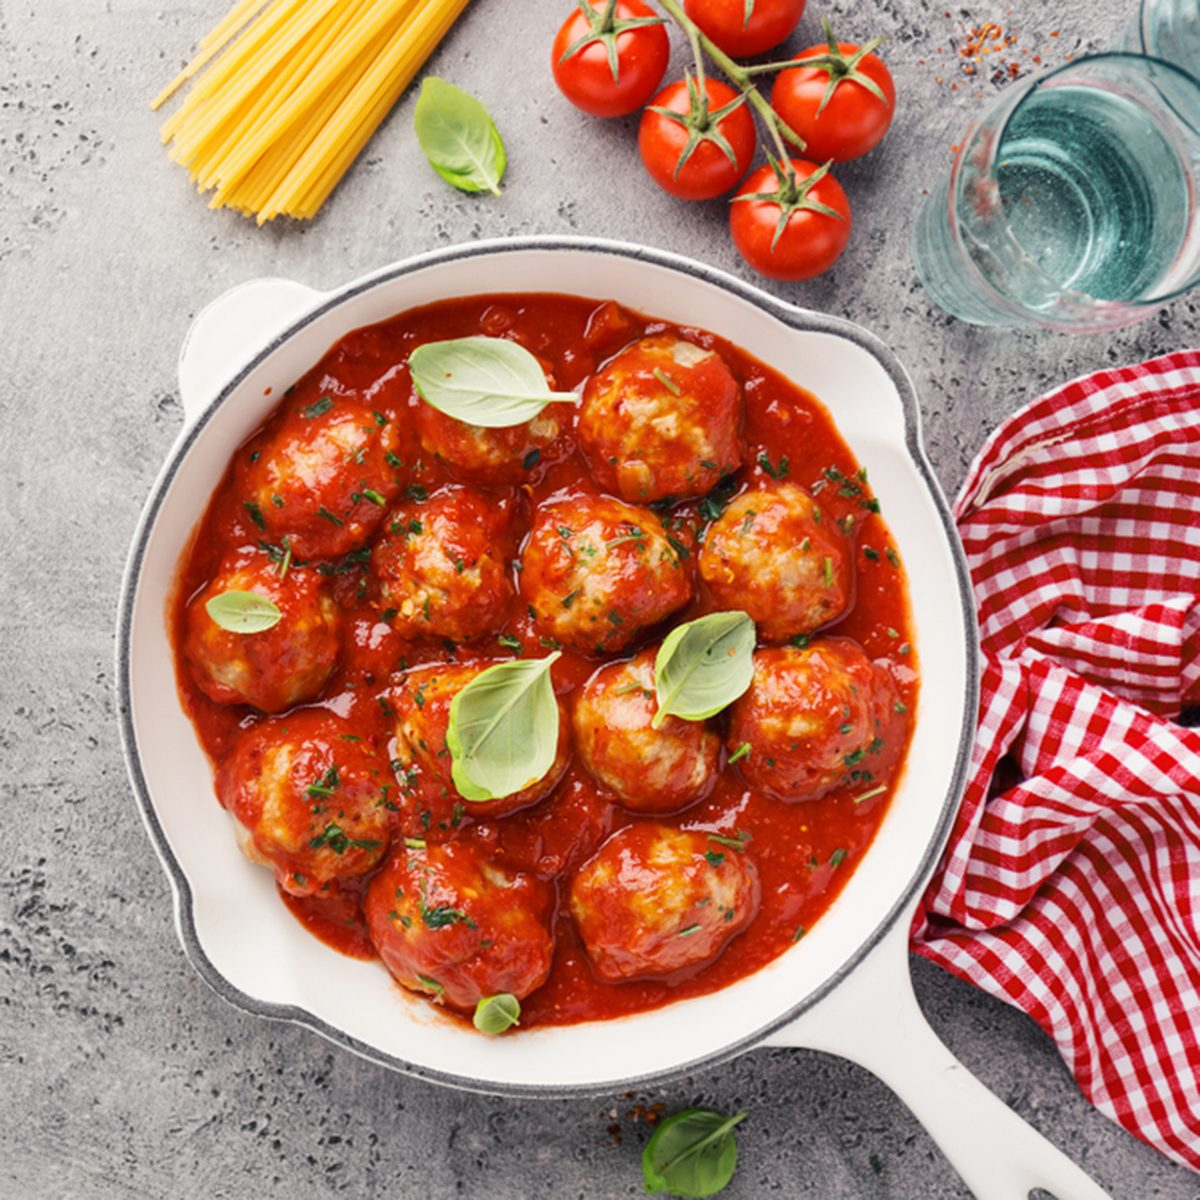 Homemade meatballs with tomato sauce and spices served in white pan on grey background. Closeup with copy space. ; Shutterstock ID 1246756819; Job (TFH, TOH, RD, BNB, CWM, CM): Taste of Home